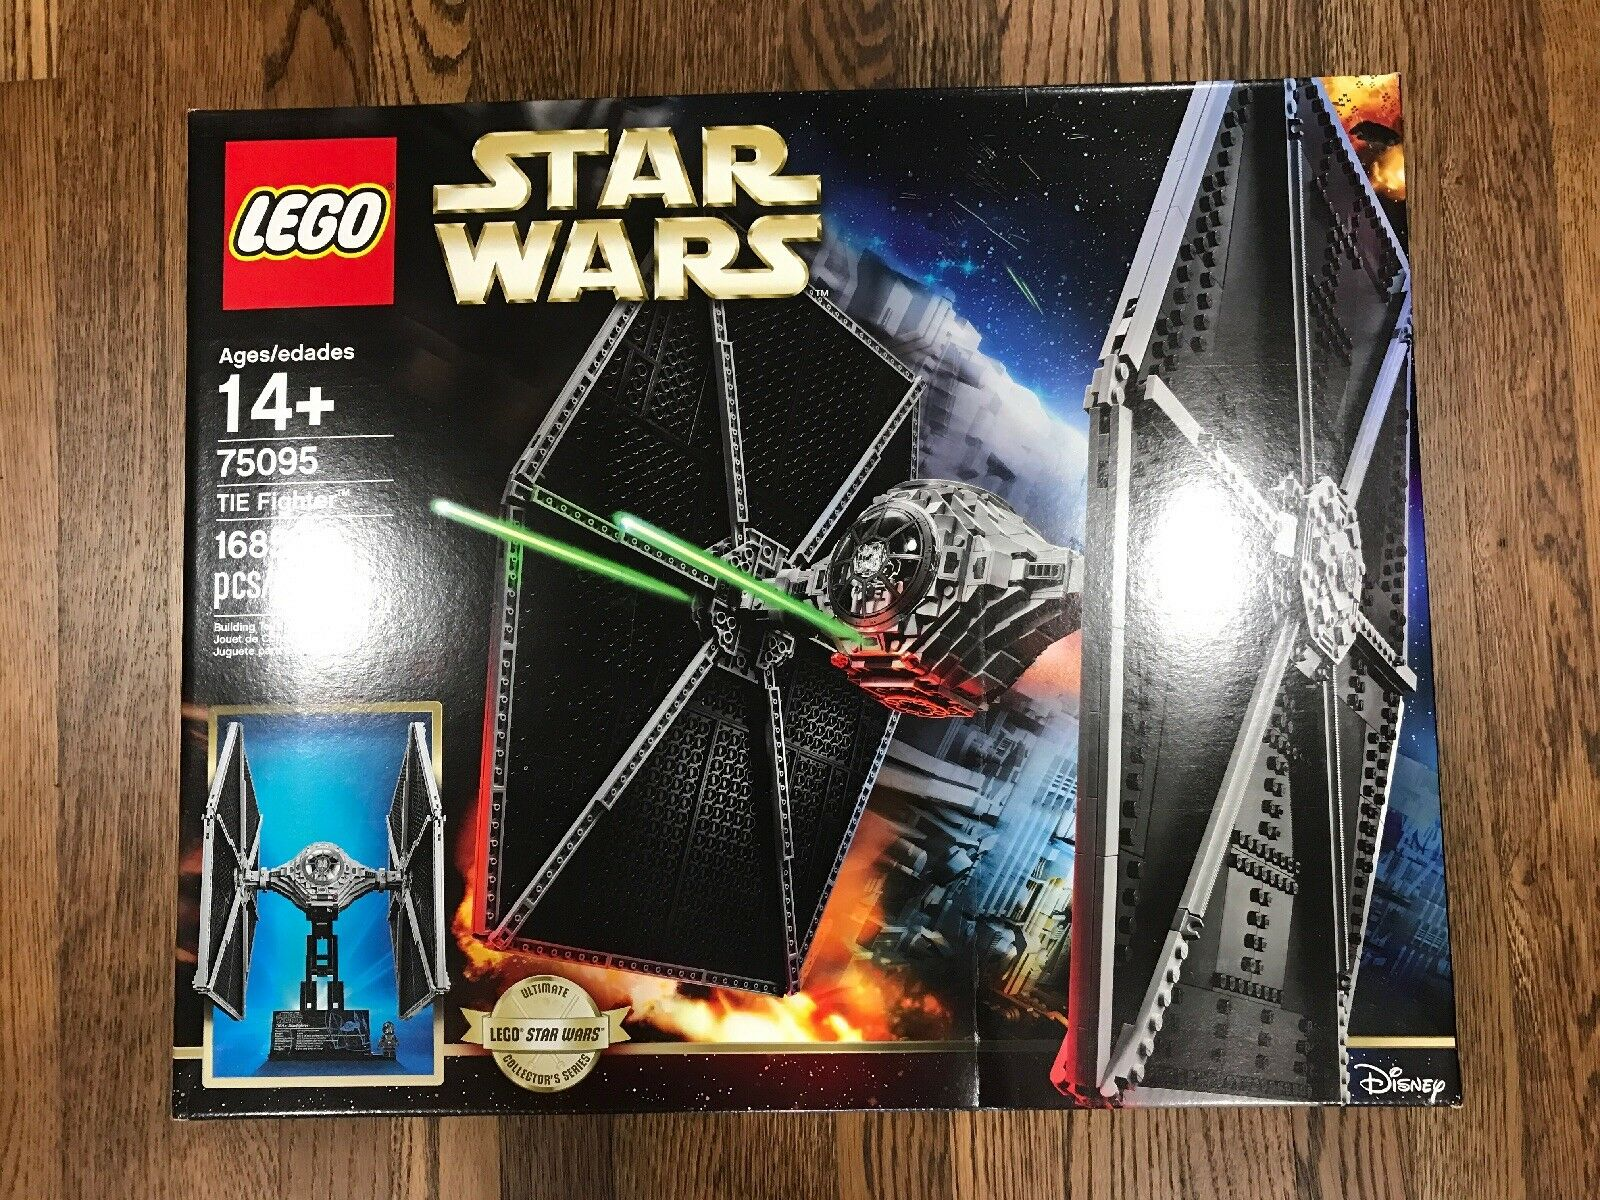 LEGO 75095 Star Wars cravate Fighter Set  Ultimate Collectors Series nouveau SEALED  prix raisonnable